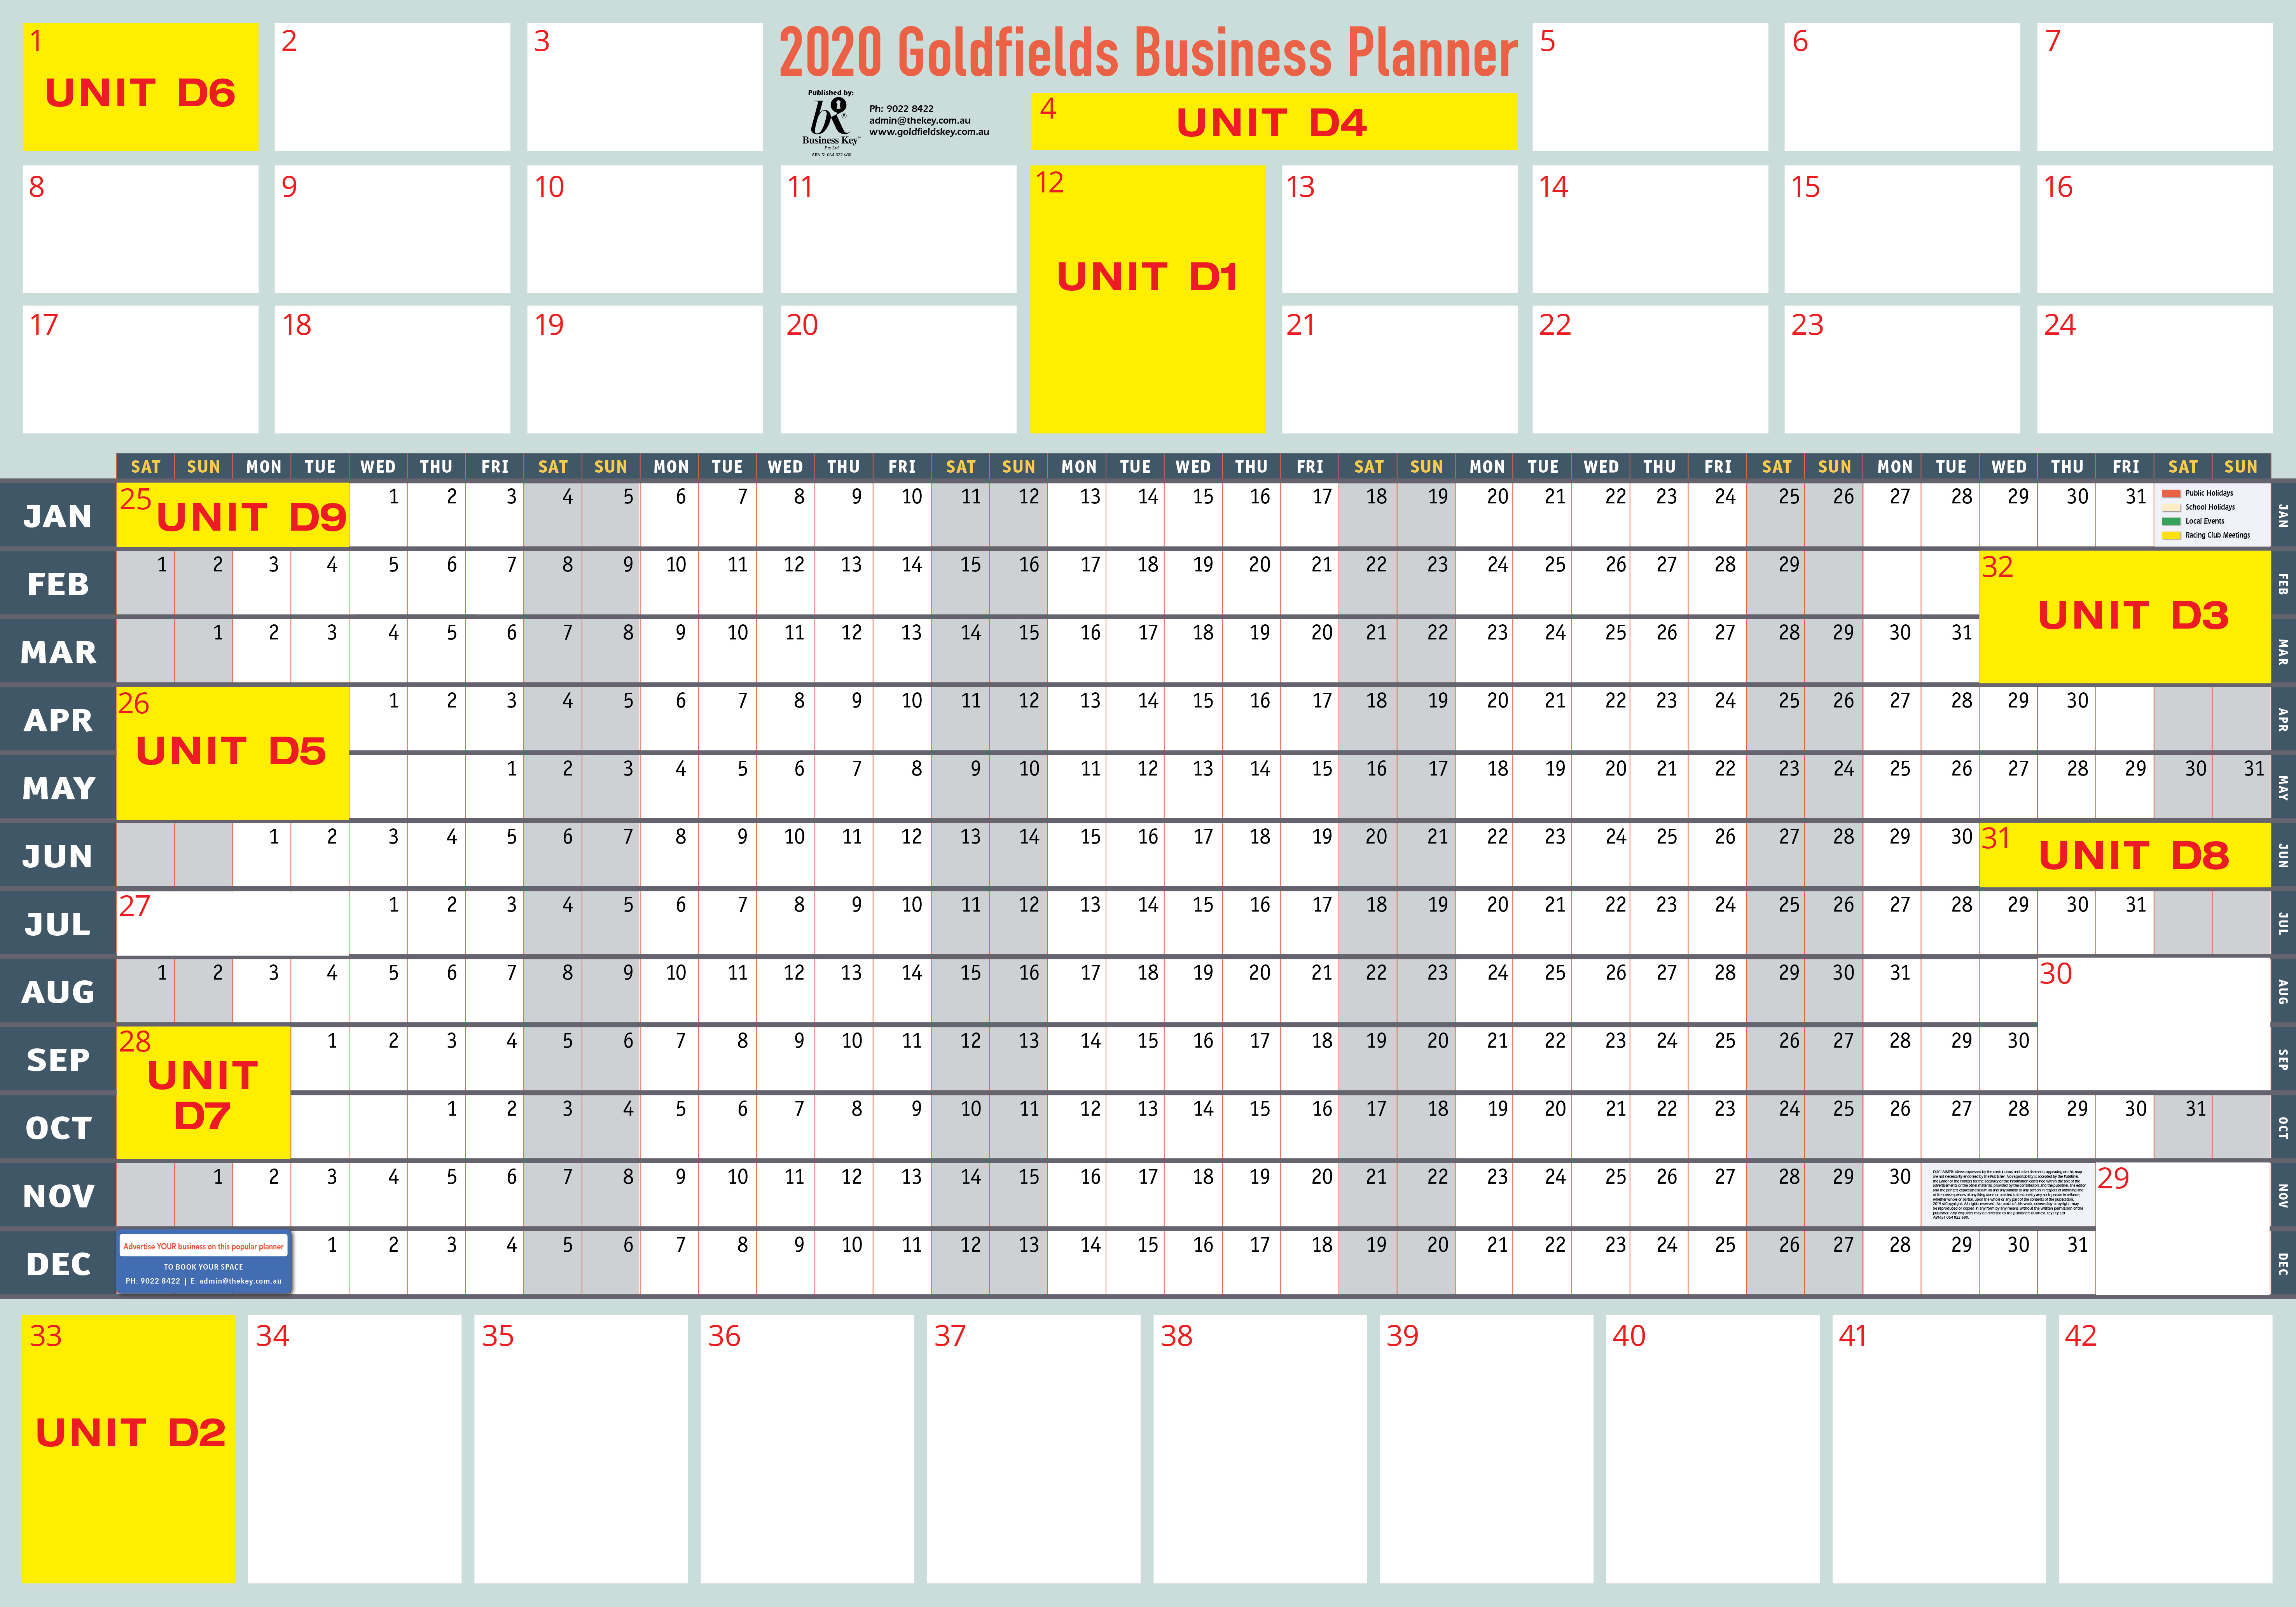 2020_Goldfields_Business_Planner_ad places